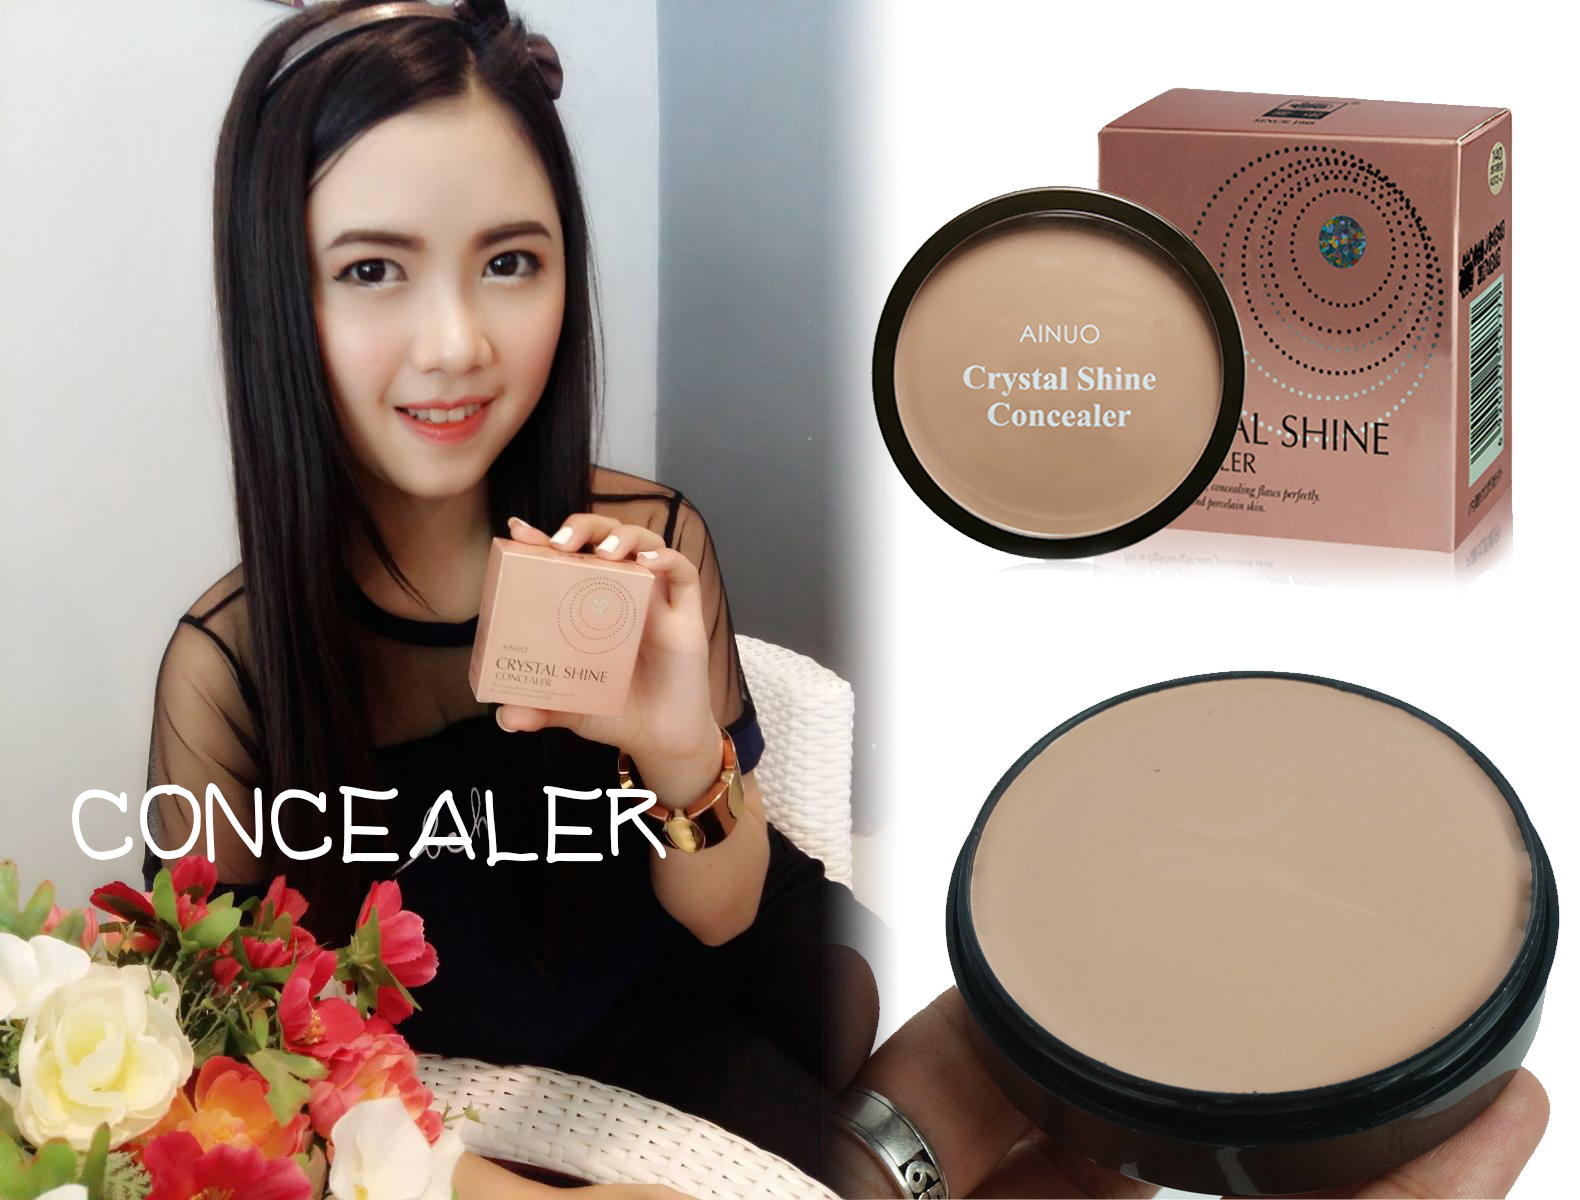 ainuo crytal shine concealer